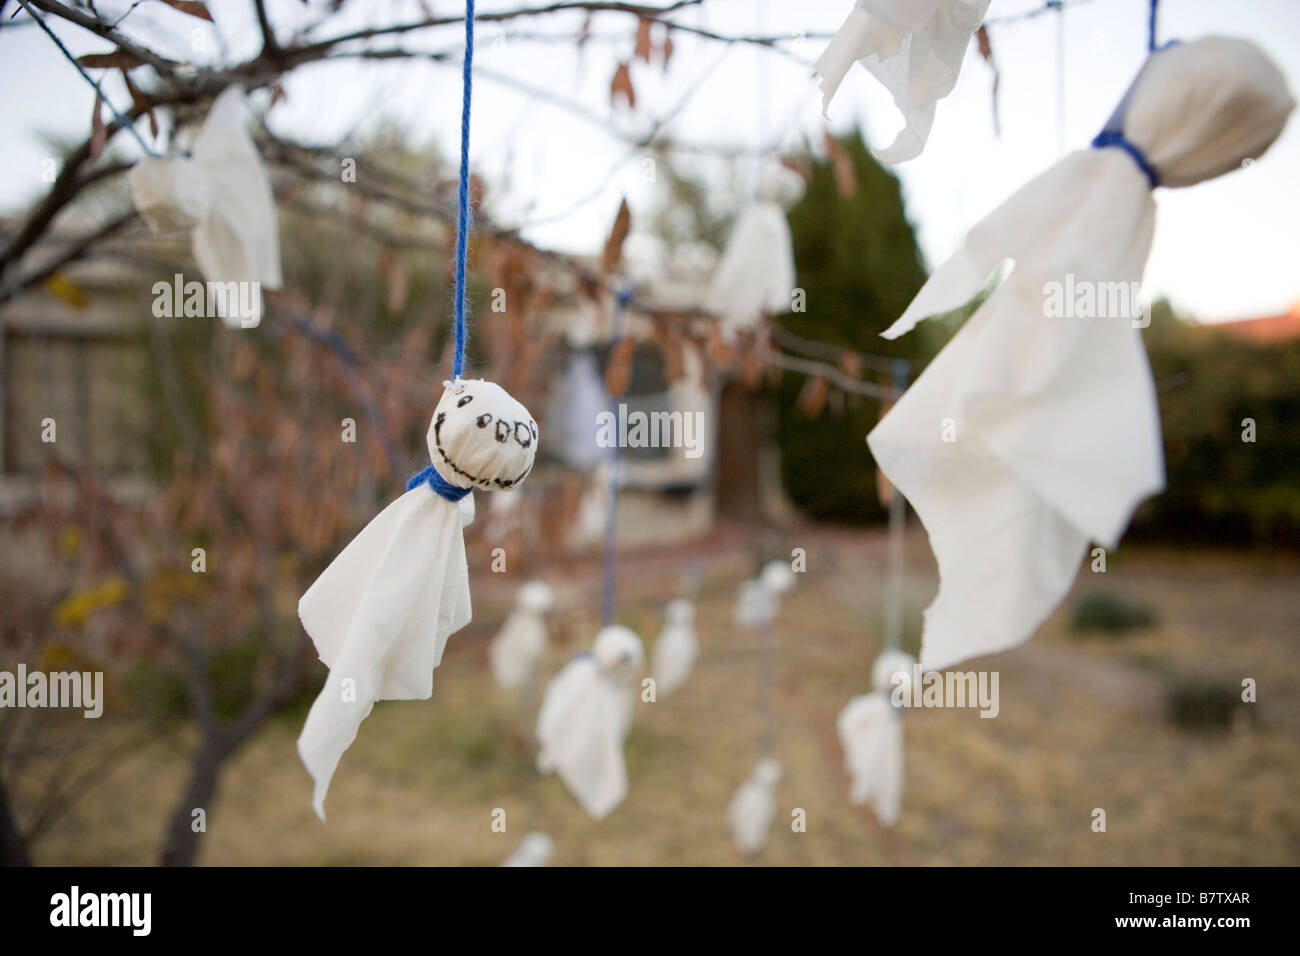 hand made ghost decorations hanging from a tree in front